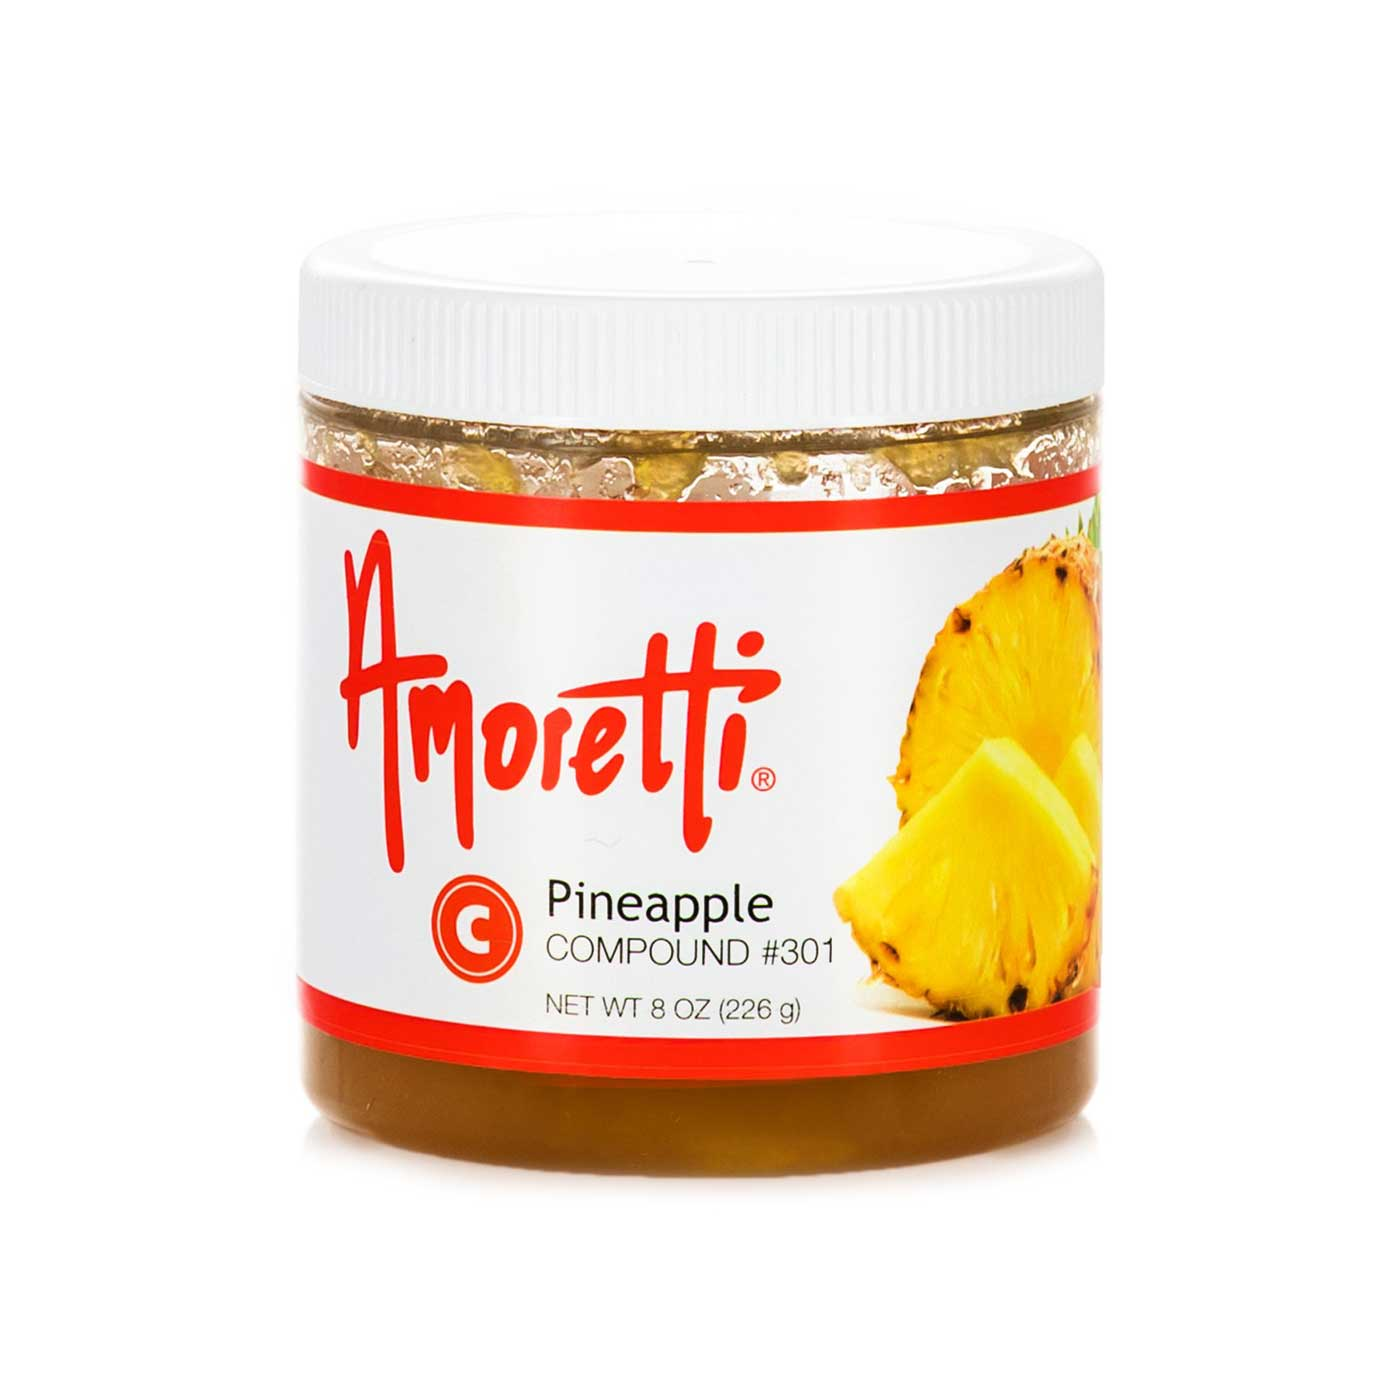 Amoretti tropical pineapple is so sweet and delicious that it's used in both sweet and savory dishes.